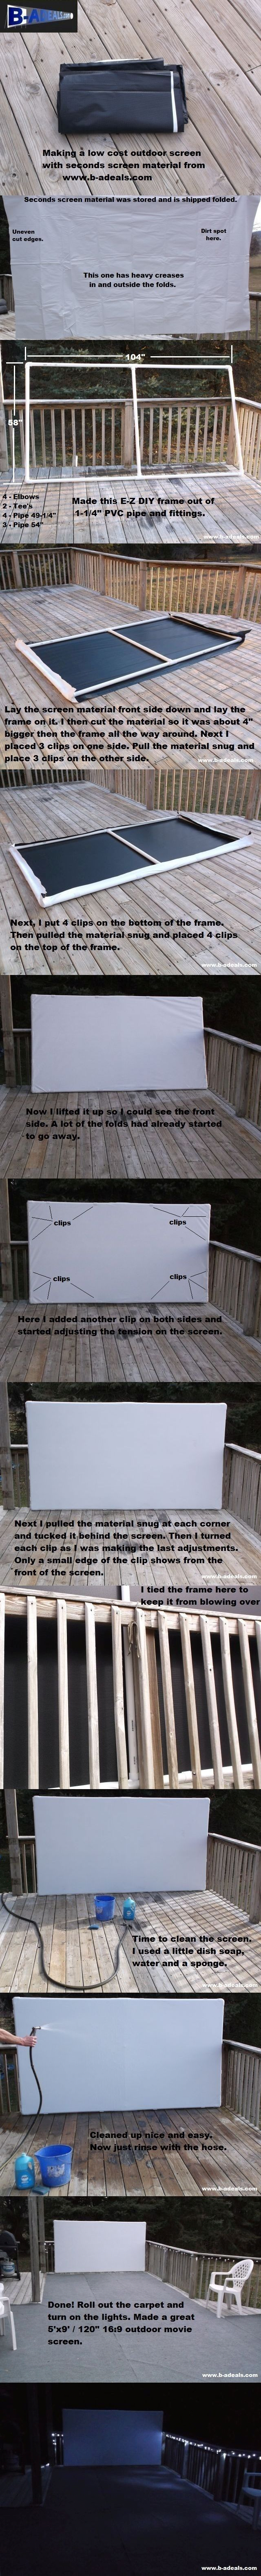 best 25 outdoor projector ideas on pinterest outdoor projector